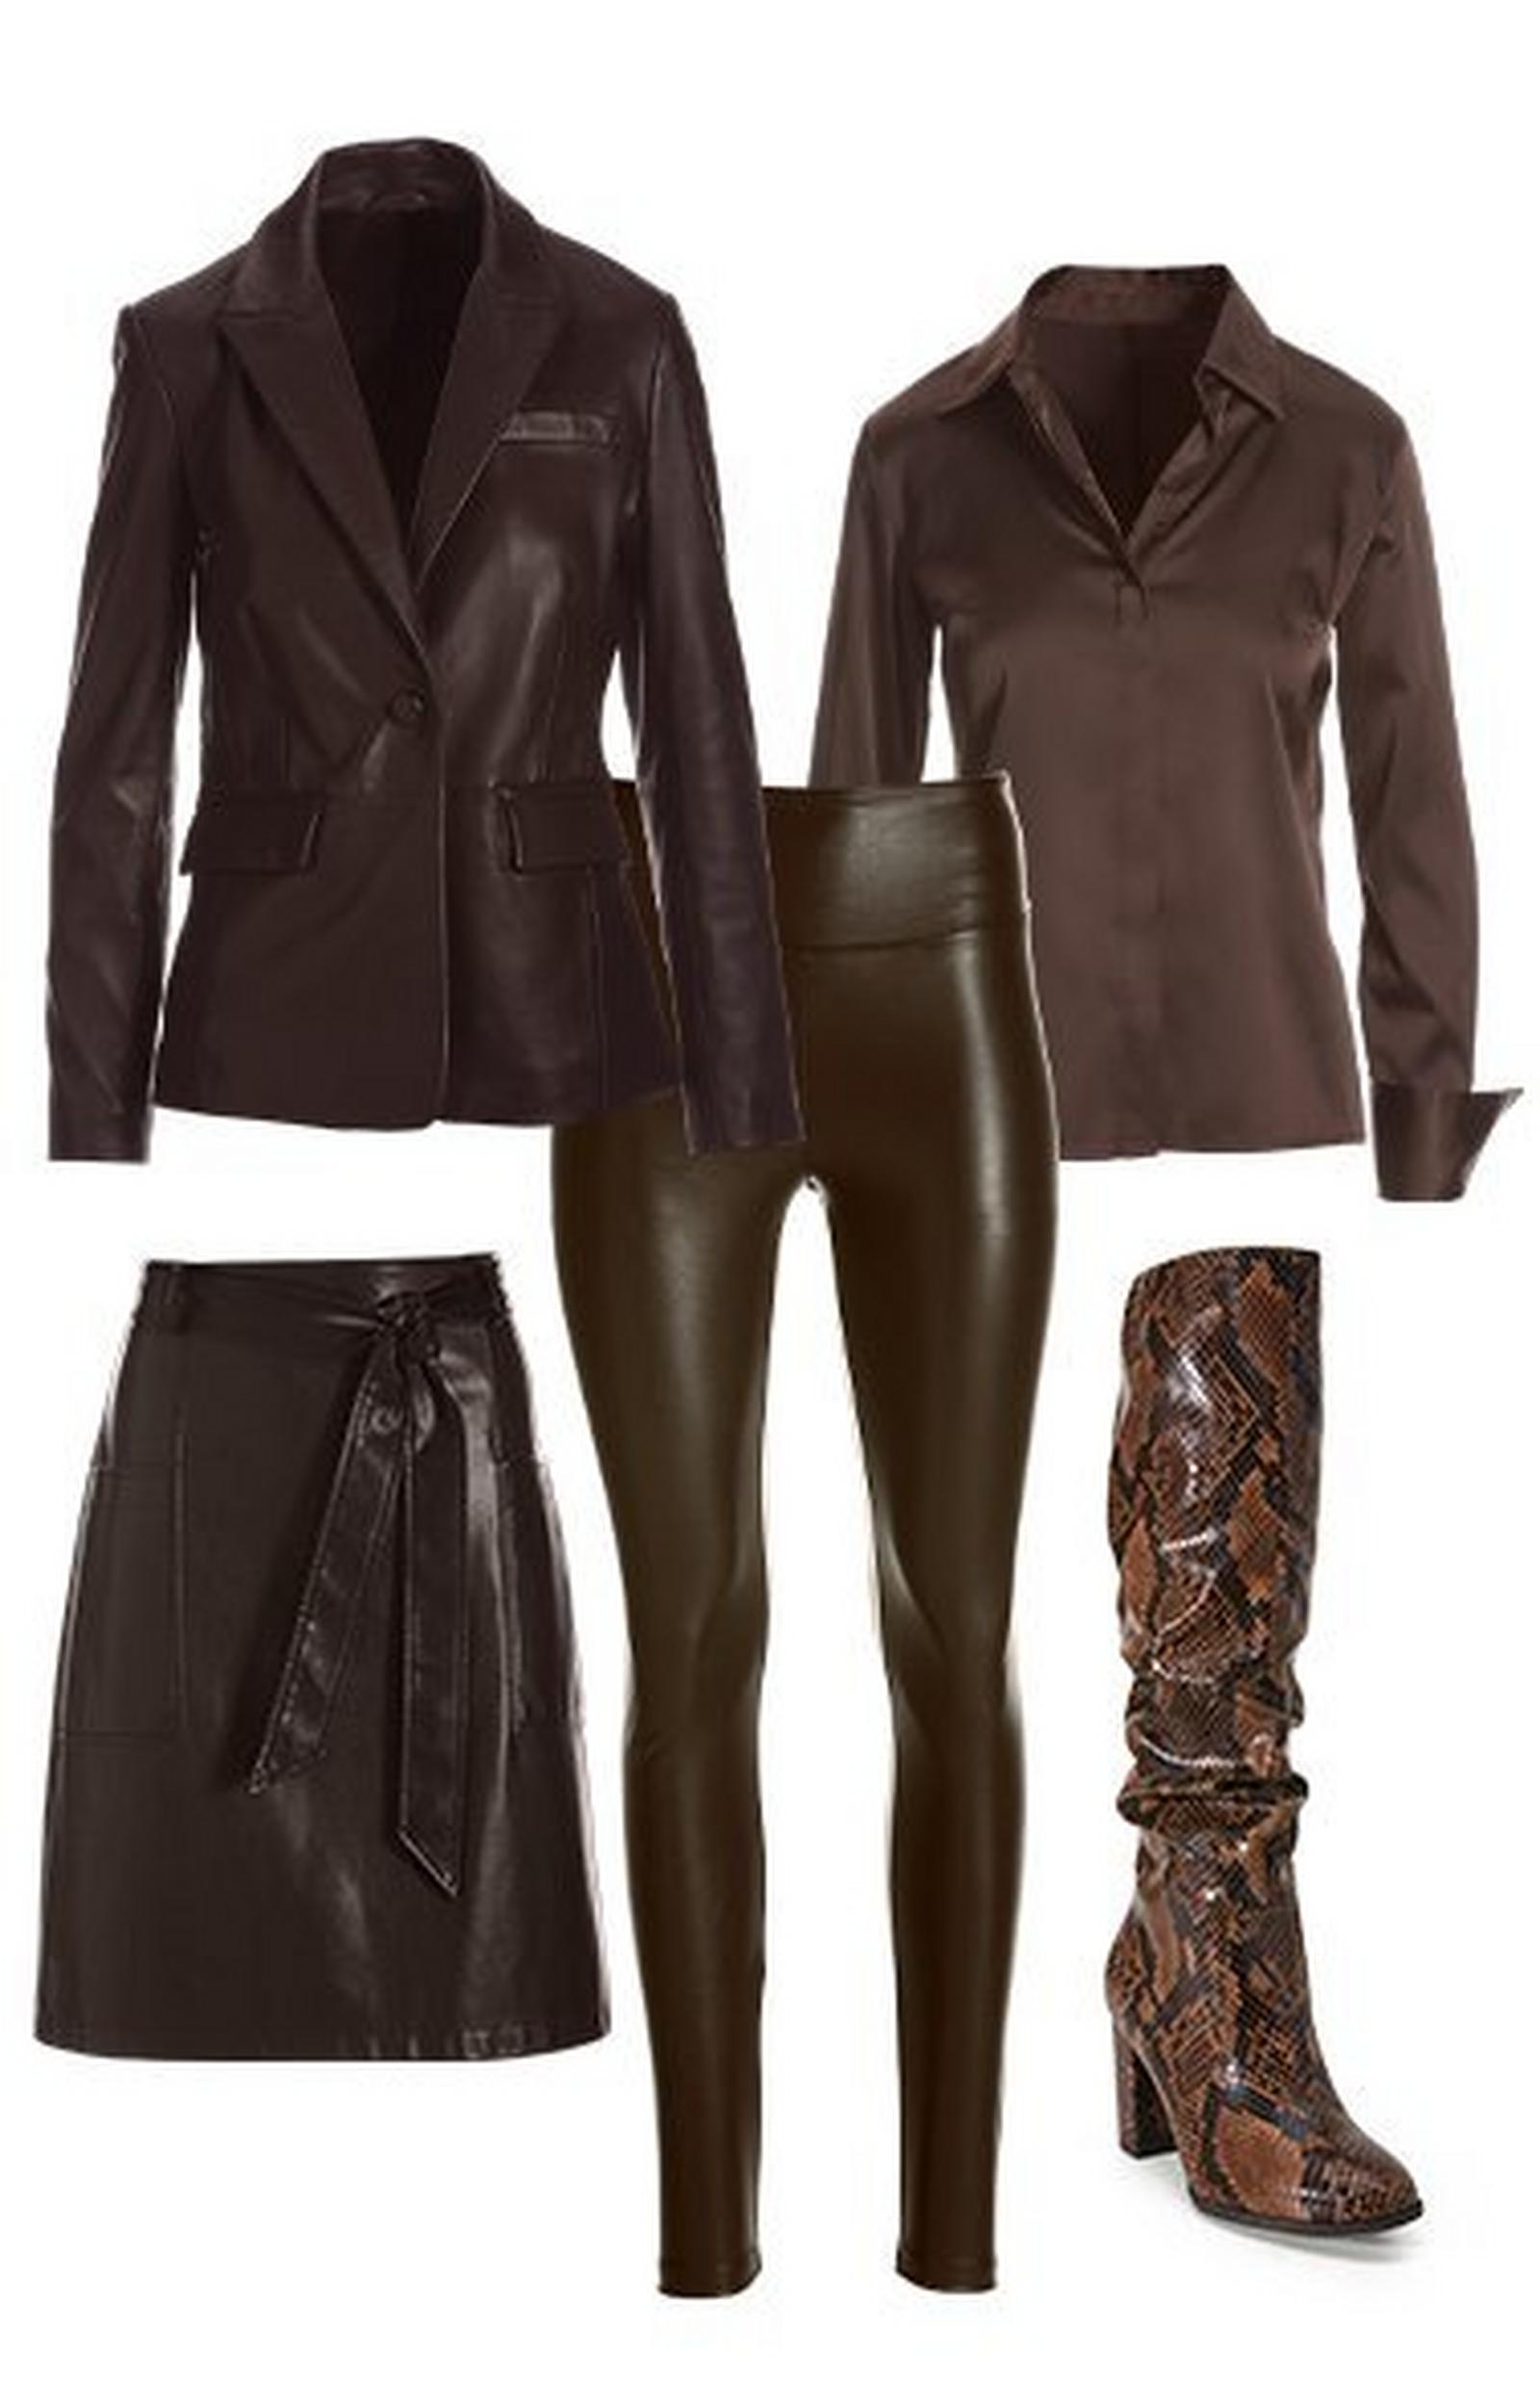 pullout shots: chocolate brown leather blazer, chocolate brown button-down long sleeve top, chocolate brown faux-leather skirt, chocolate brown faux-leather leggings, and brown leopard print slouchy heeled boots.